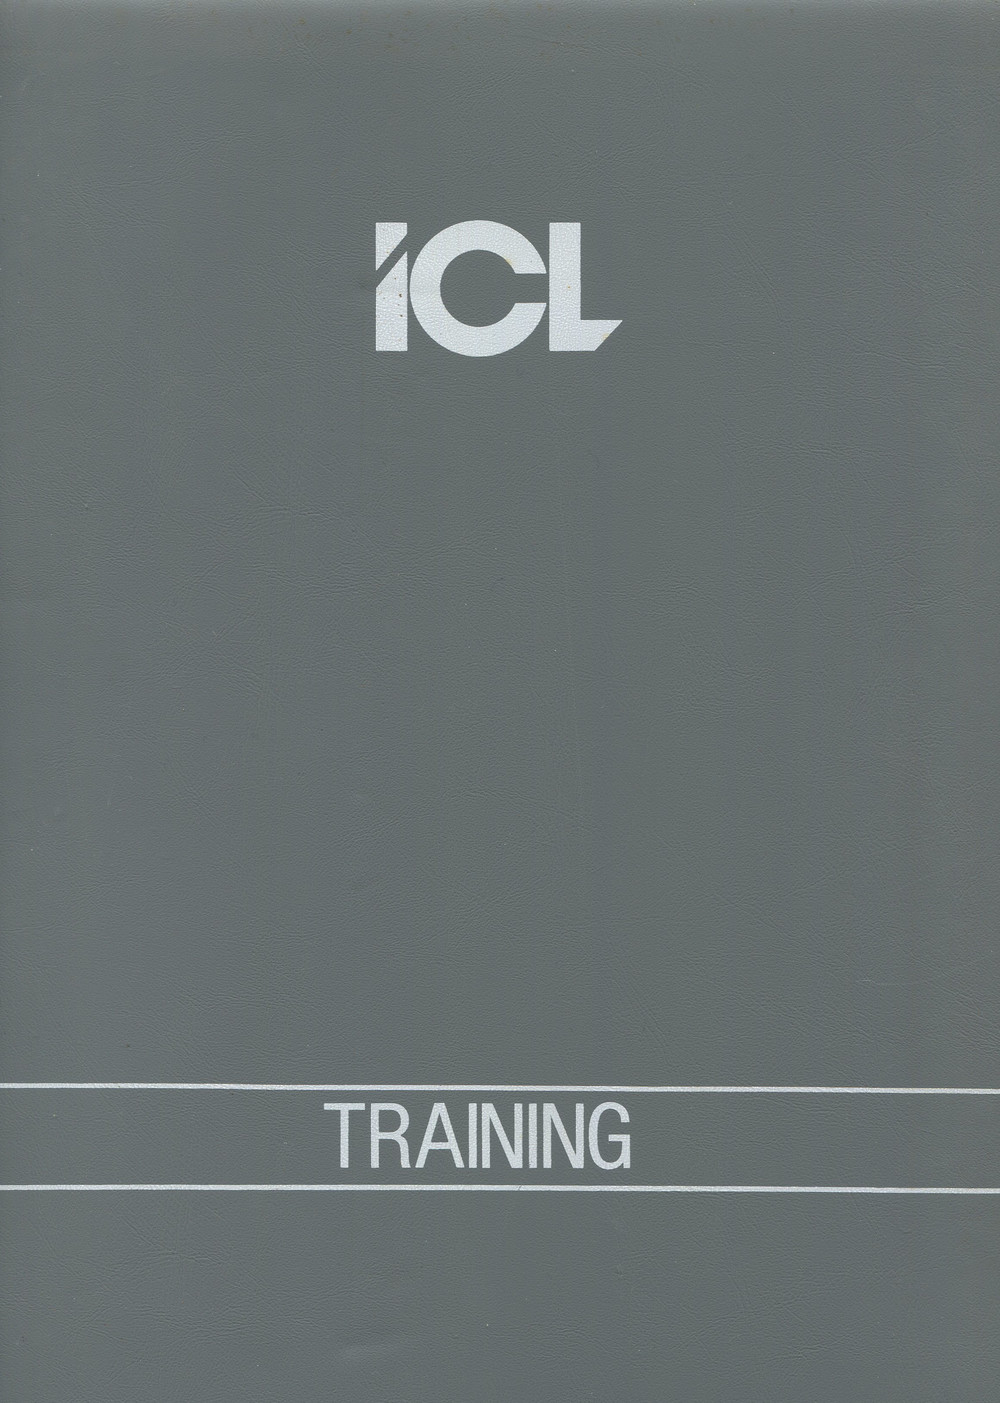 Article: ICL - Successful Project Management Skills